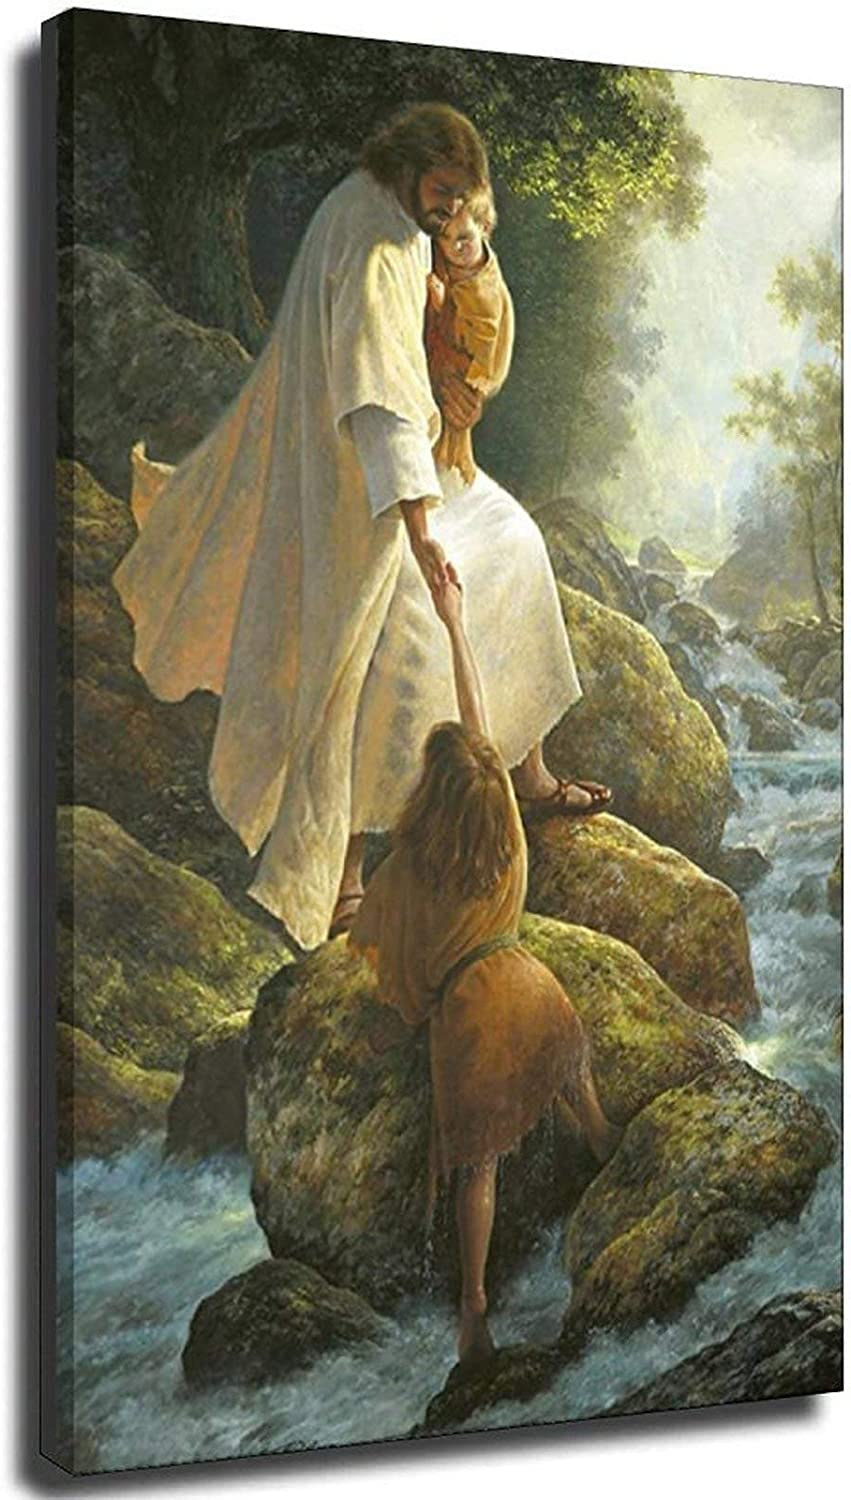 Max 64% OFF Be Not Afraid Christian Art Canvas Picture God Modular Max 49% OFF Ch Prints